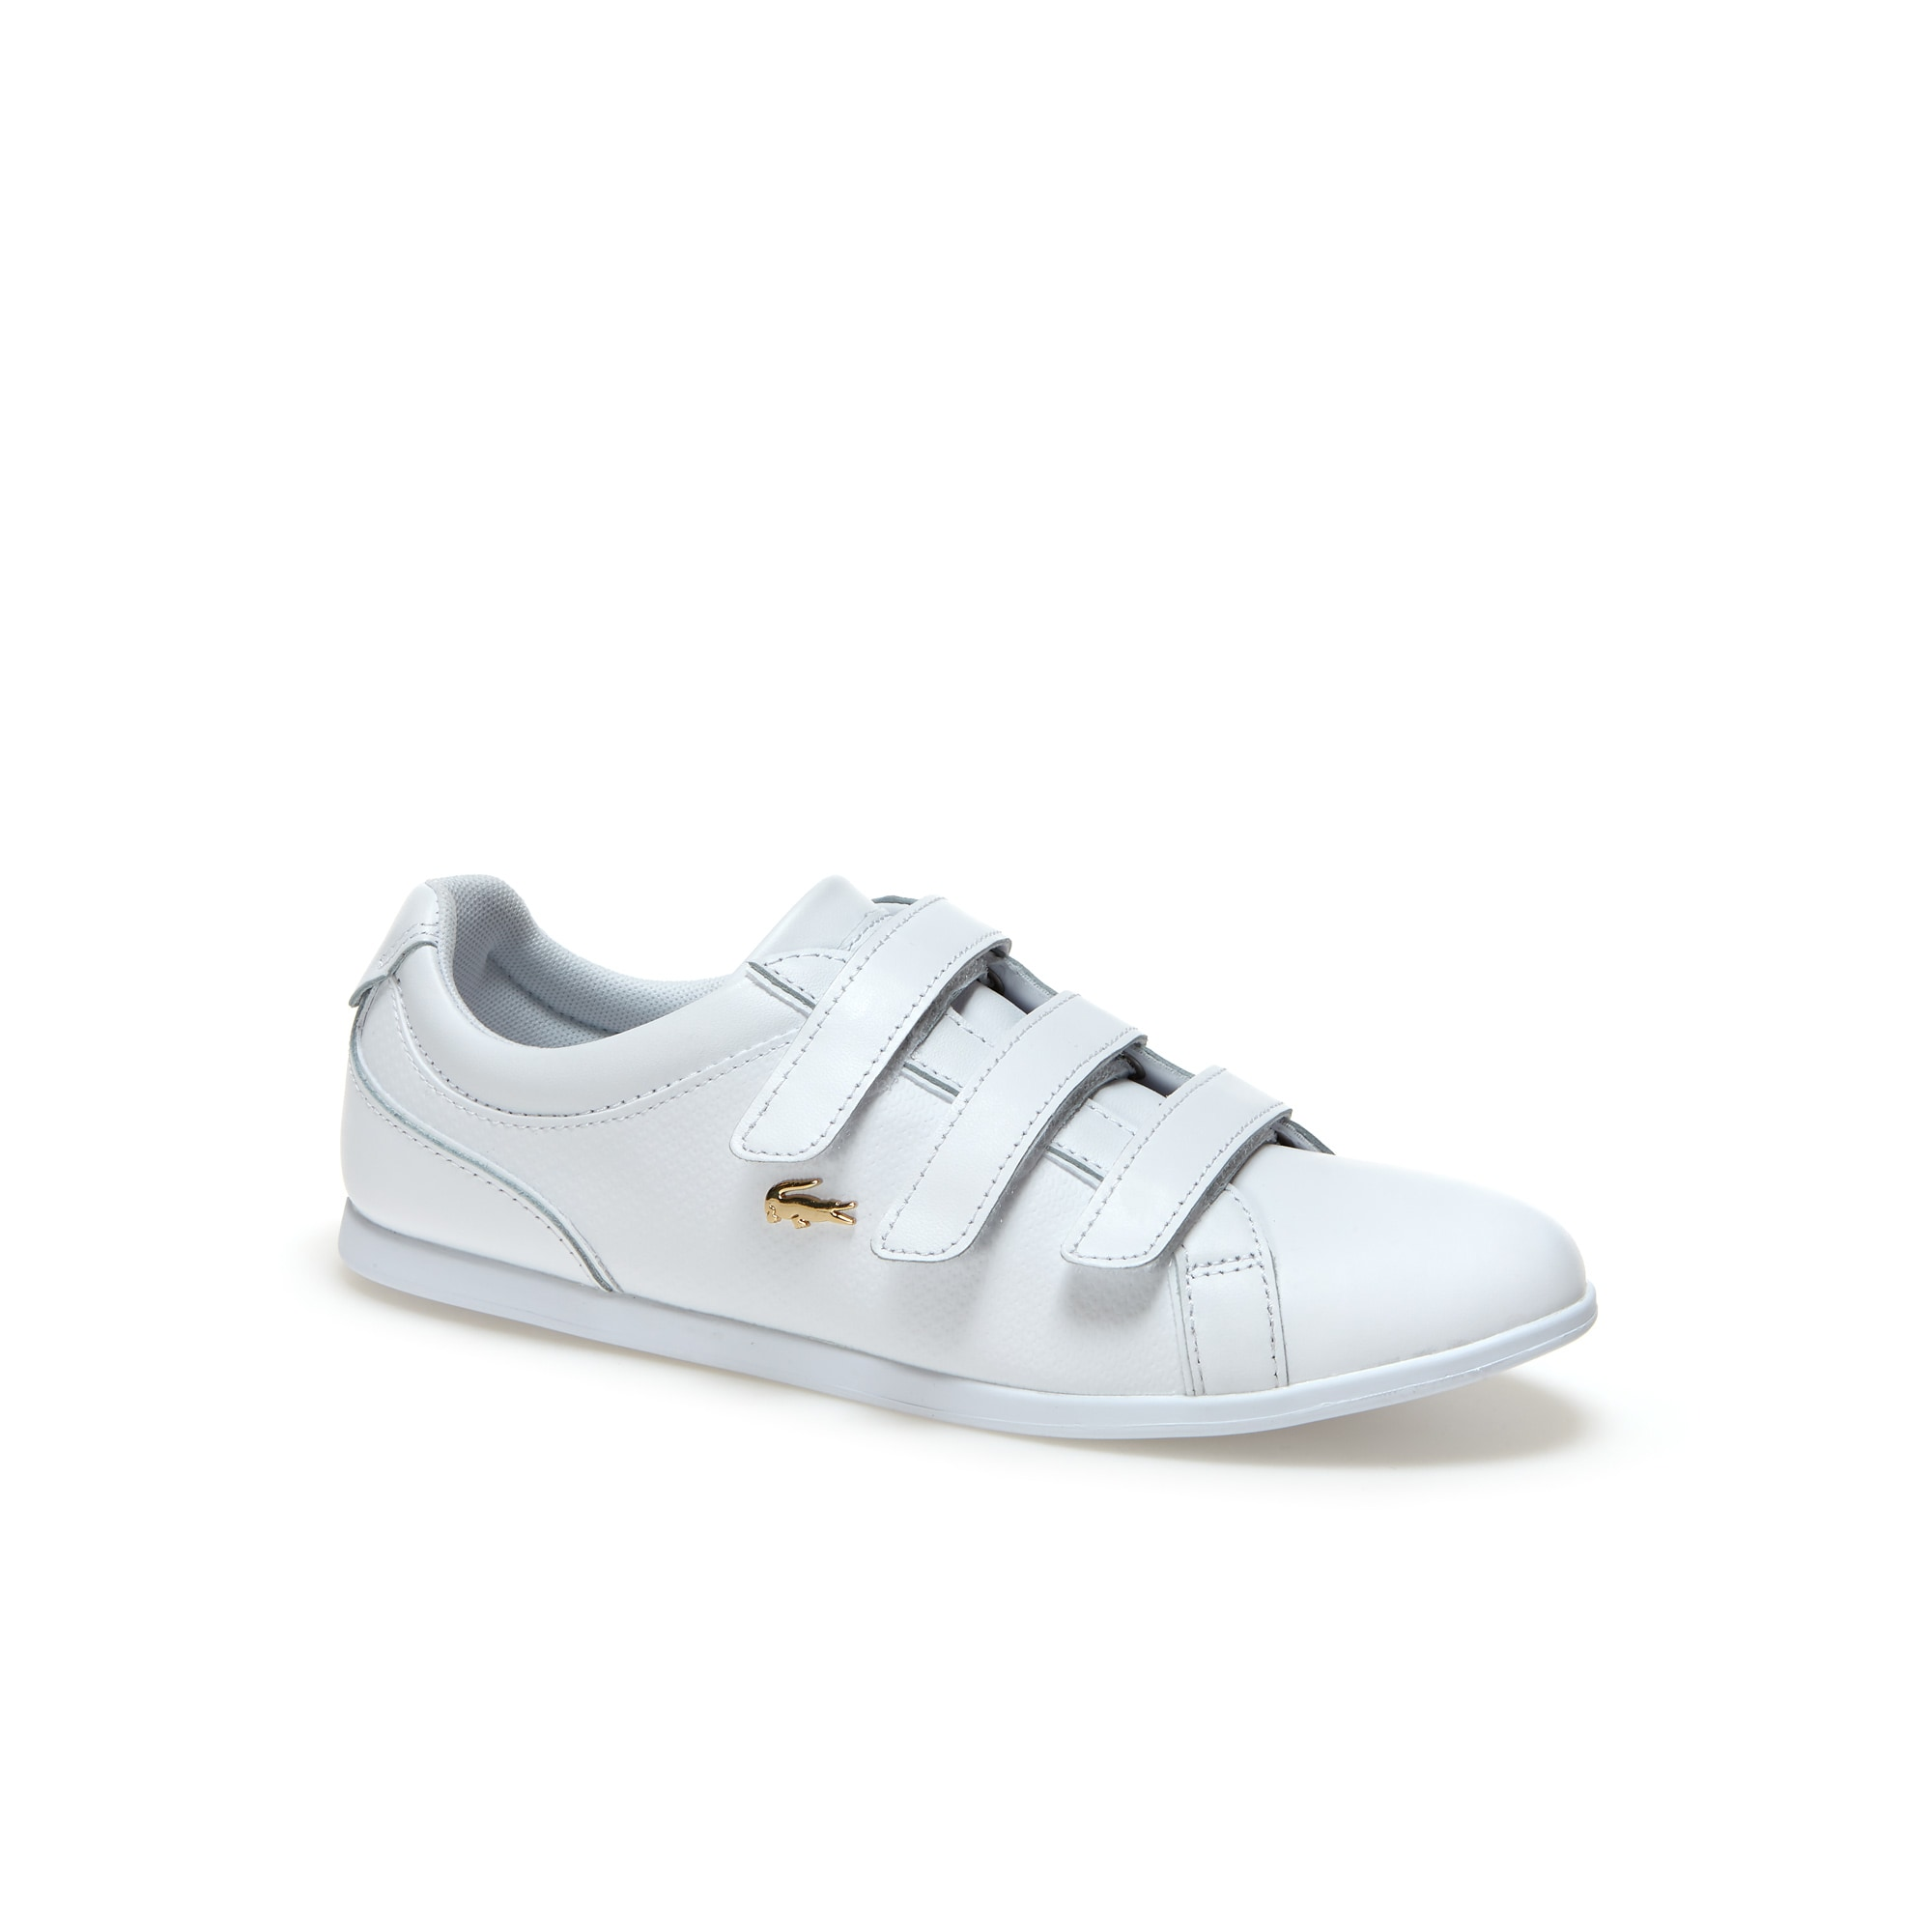 29f96cb1070f97 Women s Rey Strap Leather Trainers